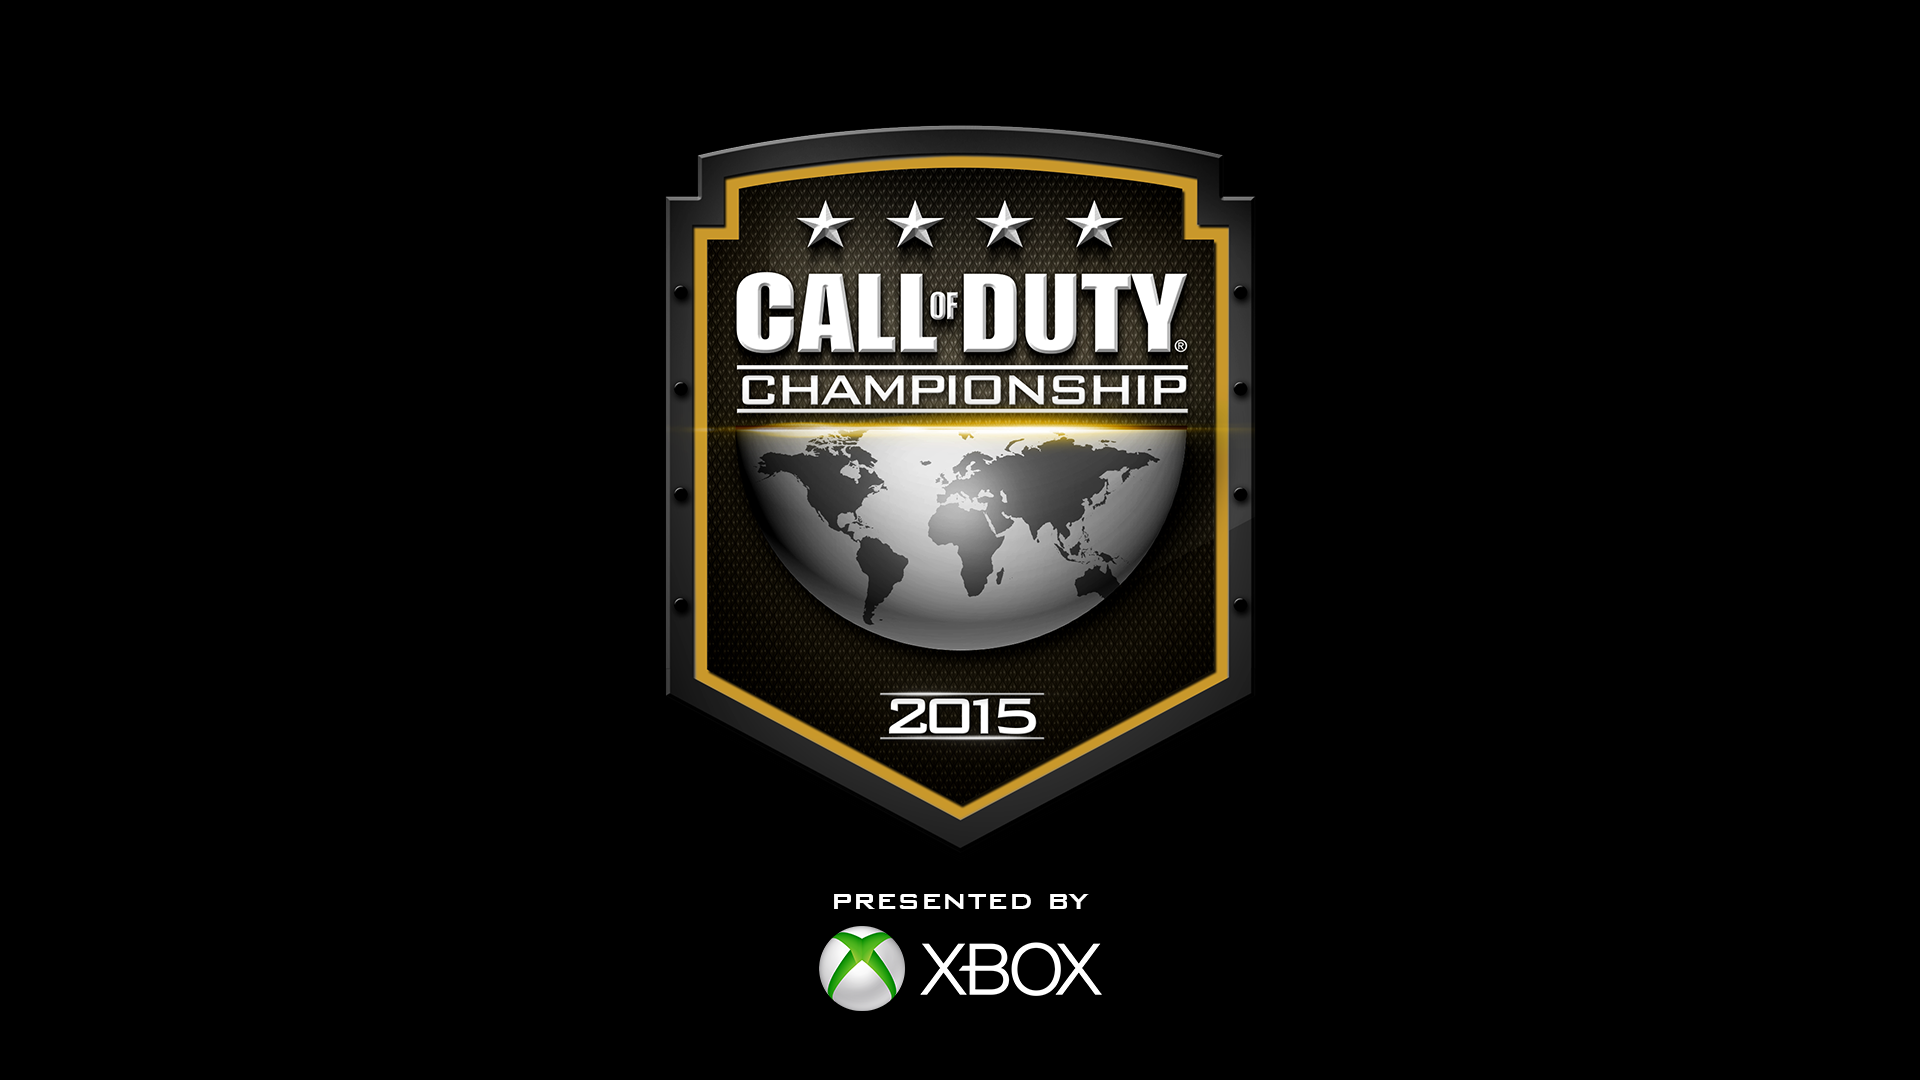 Call of Duty Championship 2015 Logo